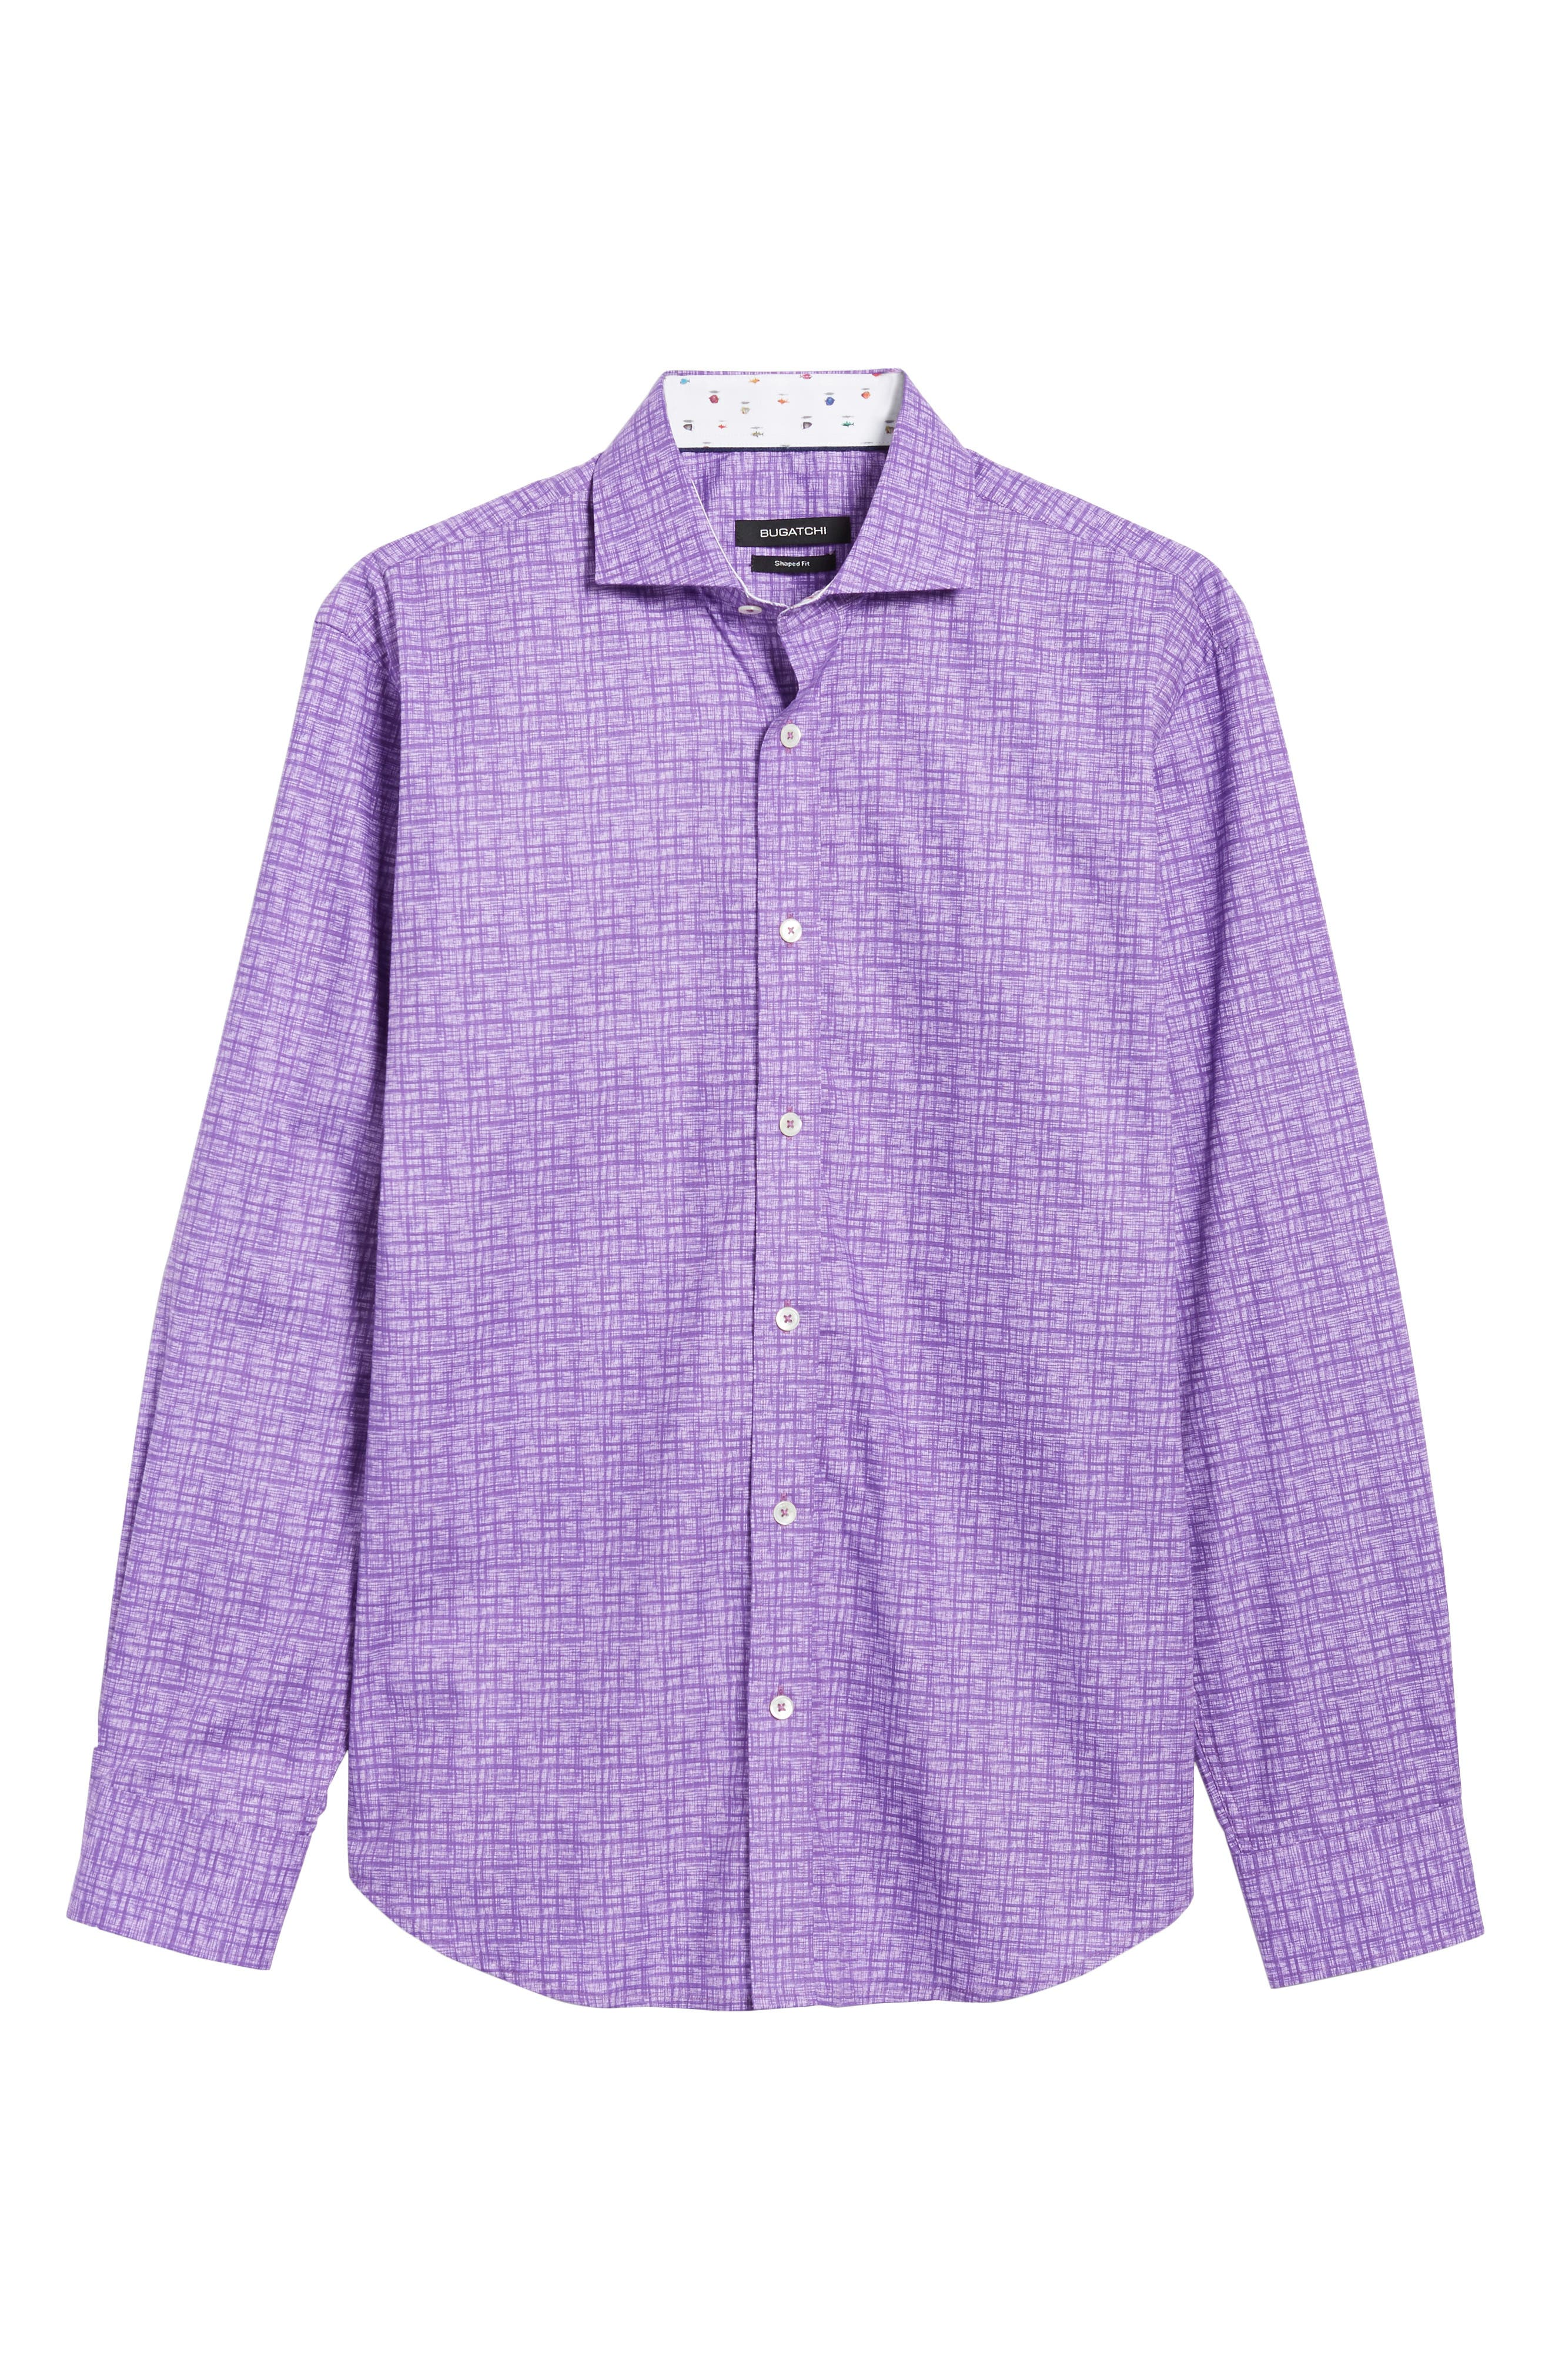 Freehand Shaped Fit Sport Shirt,                             Alternate thumbnail 6, color,                             Orchid